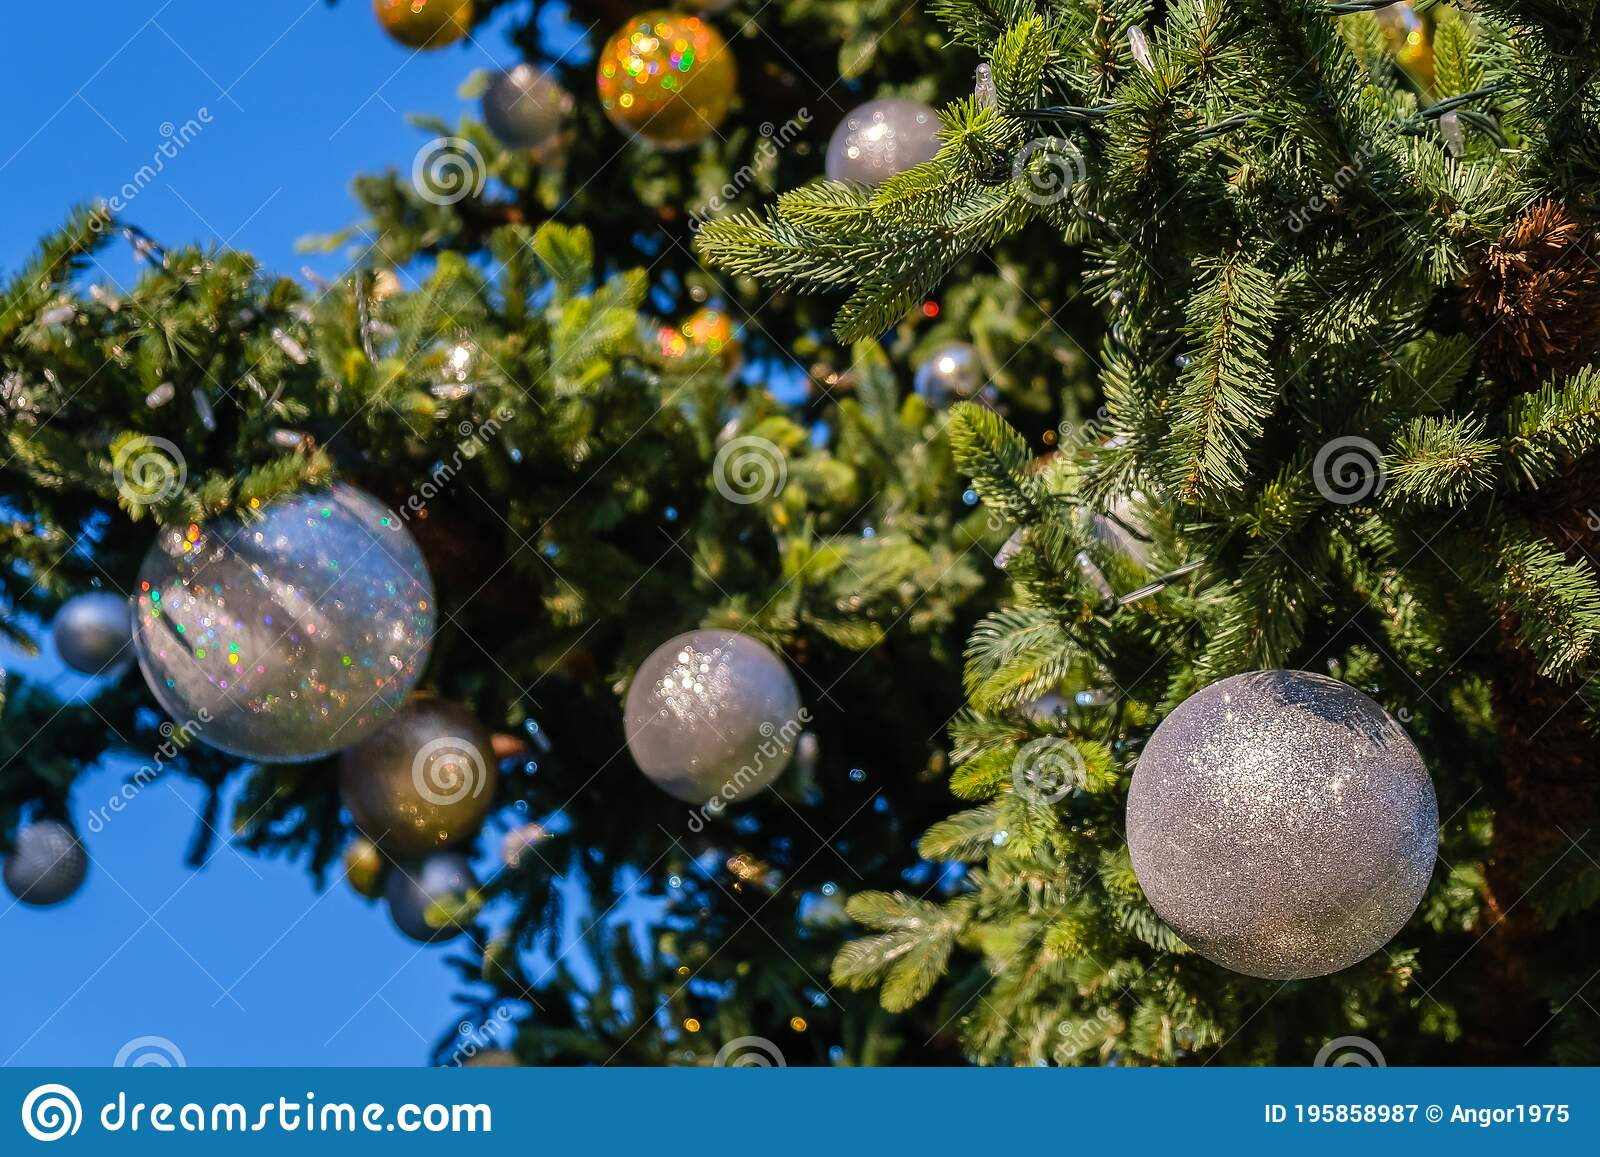 Golden And White New Year Decorations And Garland On A Branches Of Faux Christmas Tree Outdoors On Blue Sky Background At Sunny Stock Image Image Of Snow Christmas 195858987